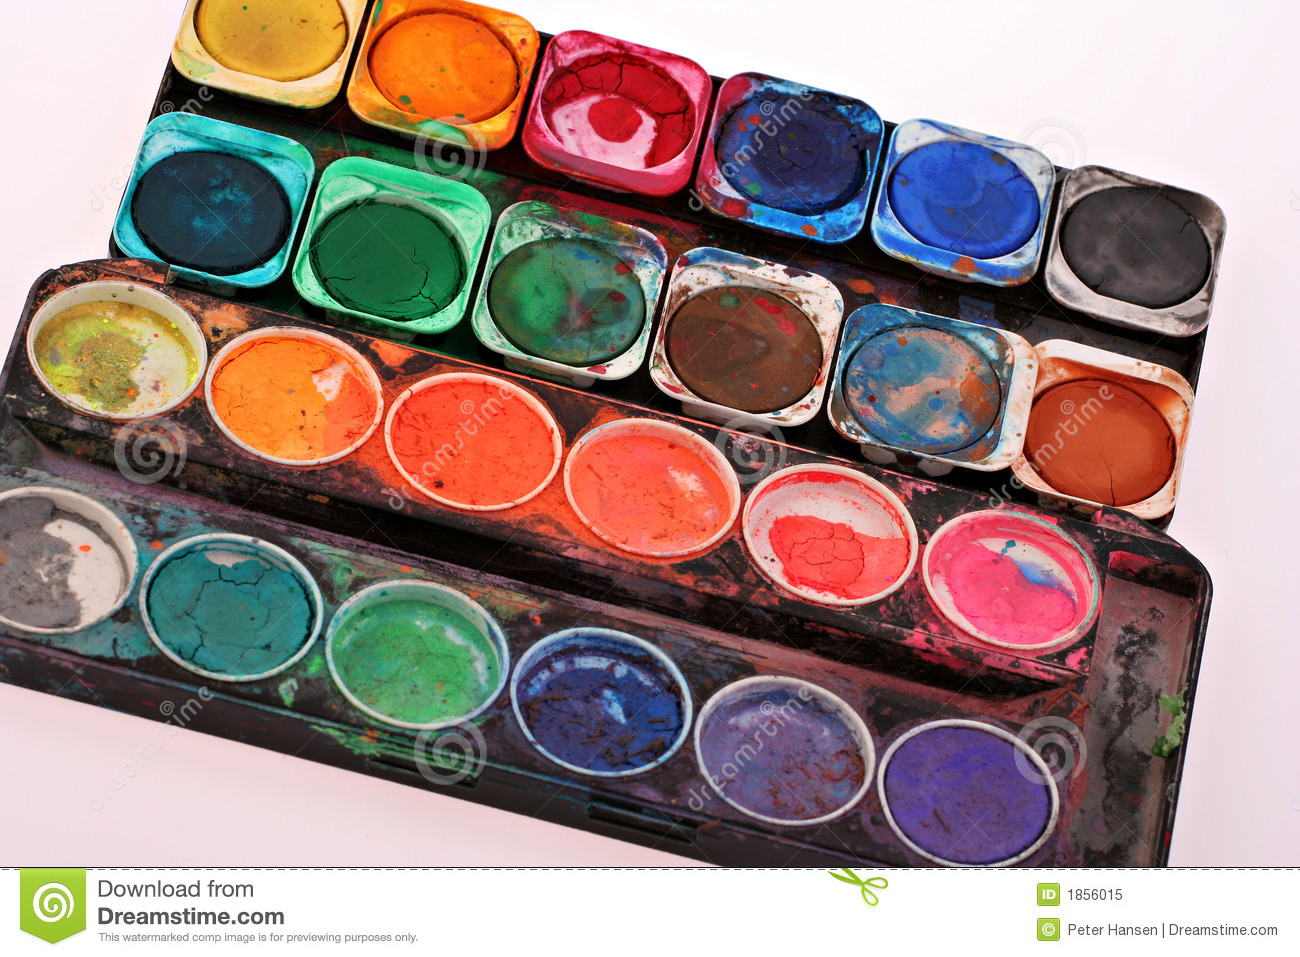 Old childrens paint set stock image. Image of mess, messy - 1856015